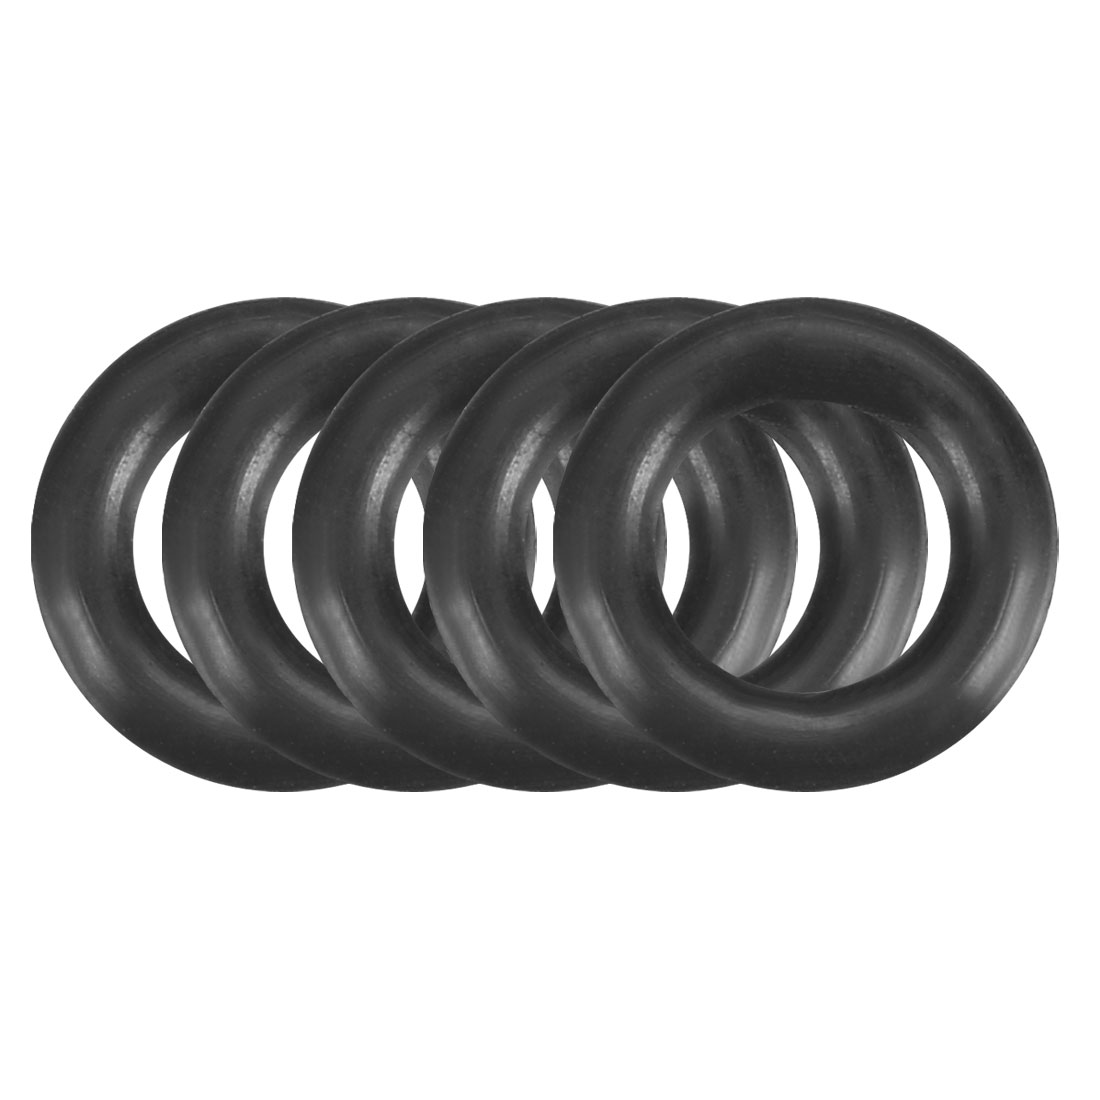 150Pcs 9mm x 1.9mm Black Flexible Nitrile Rubber O Ring Oil Seal Washer Grommets